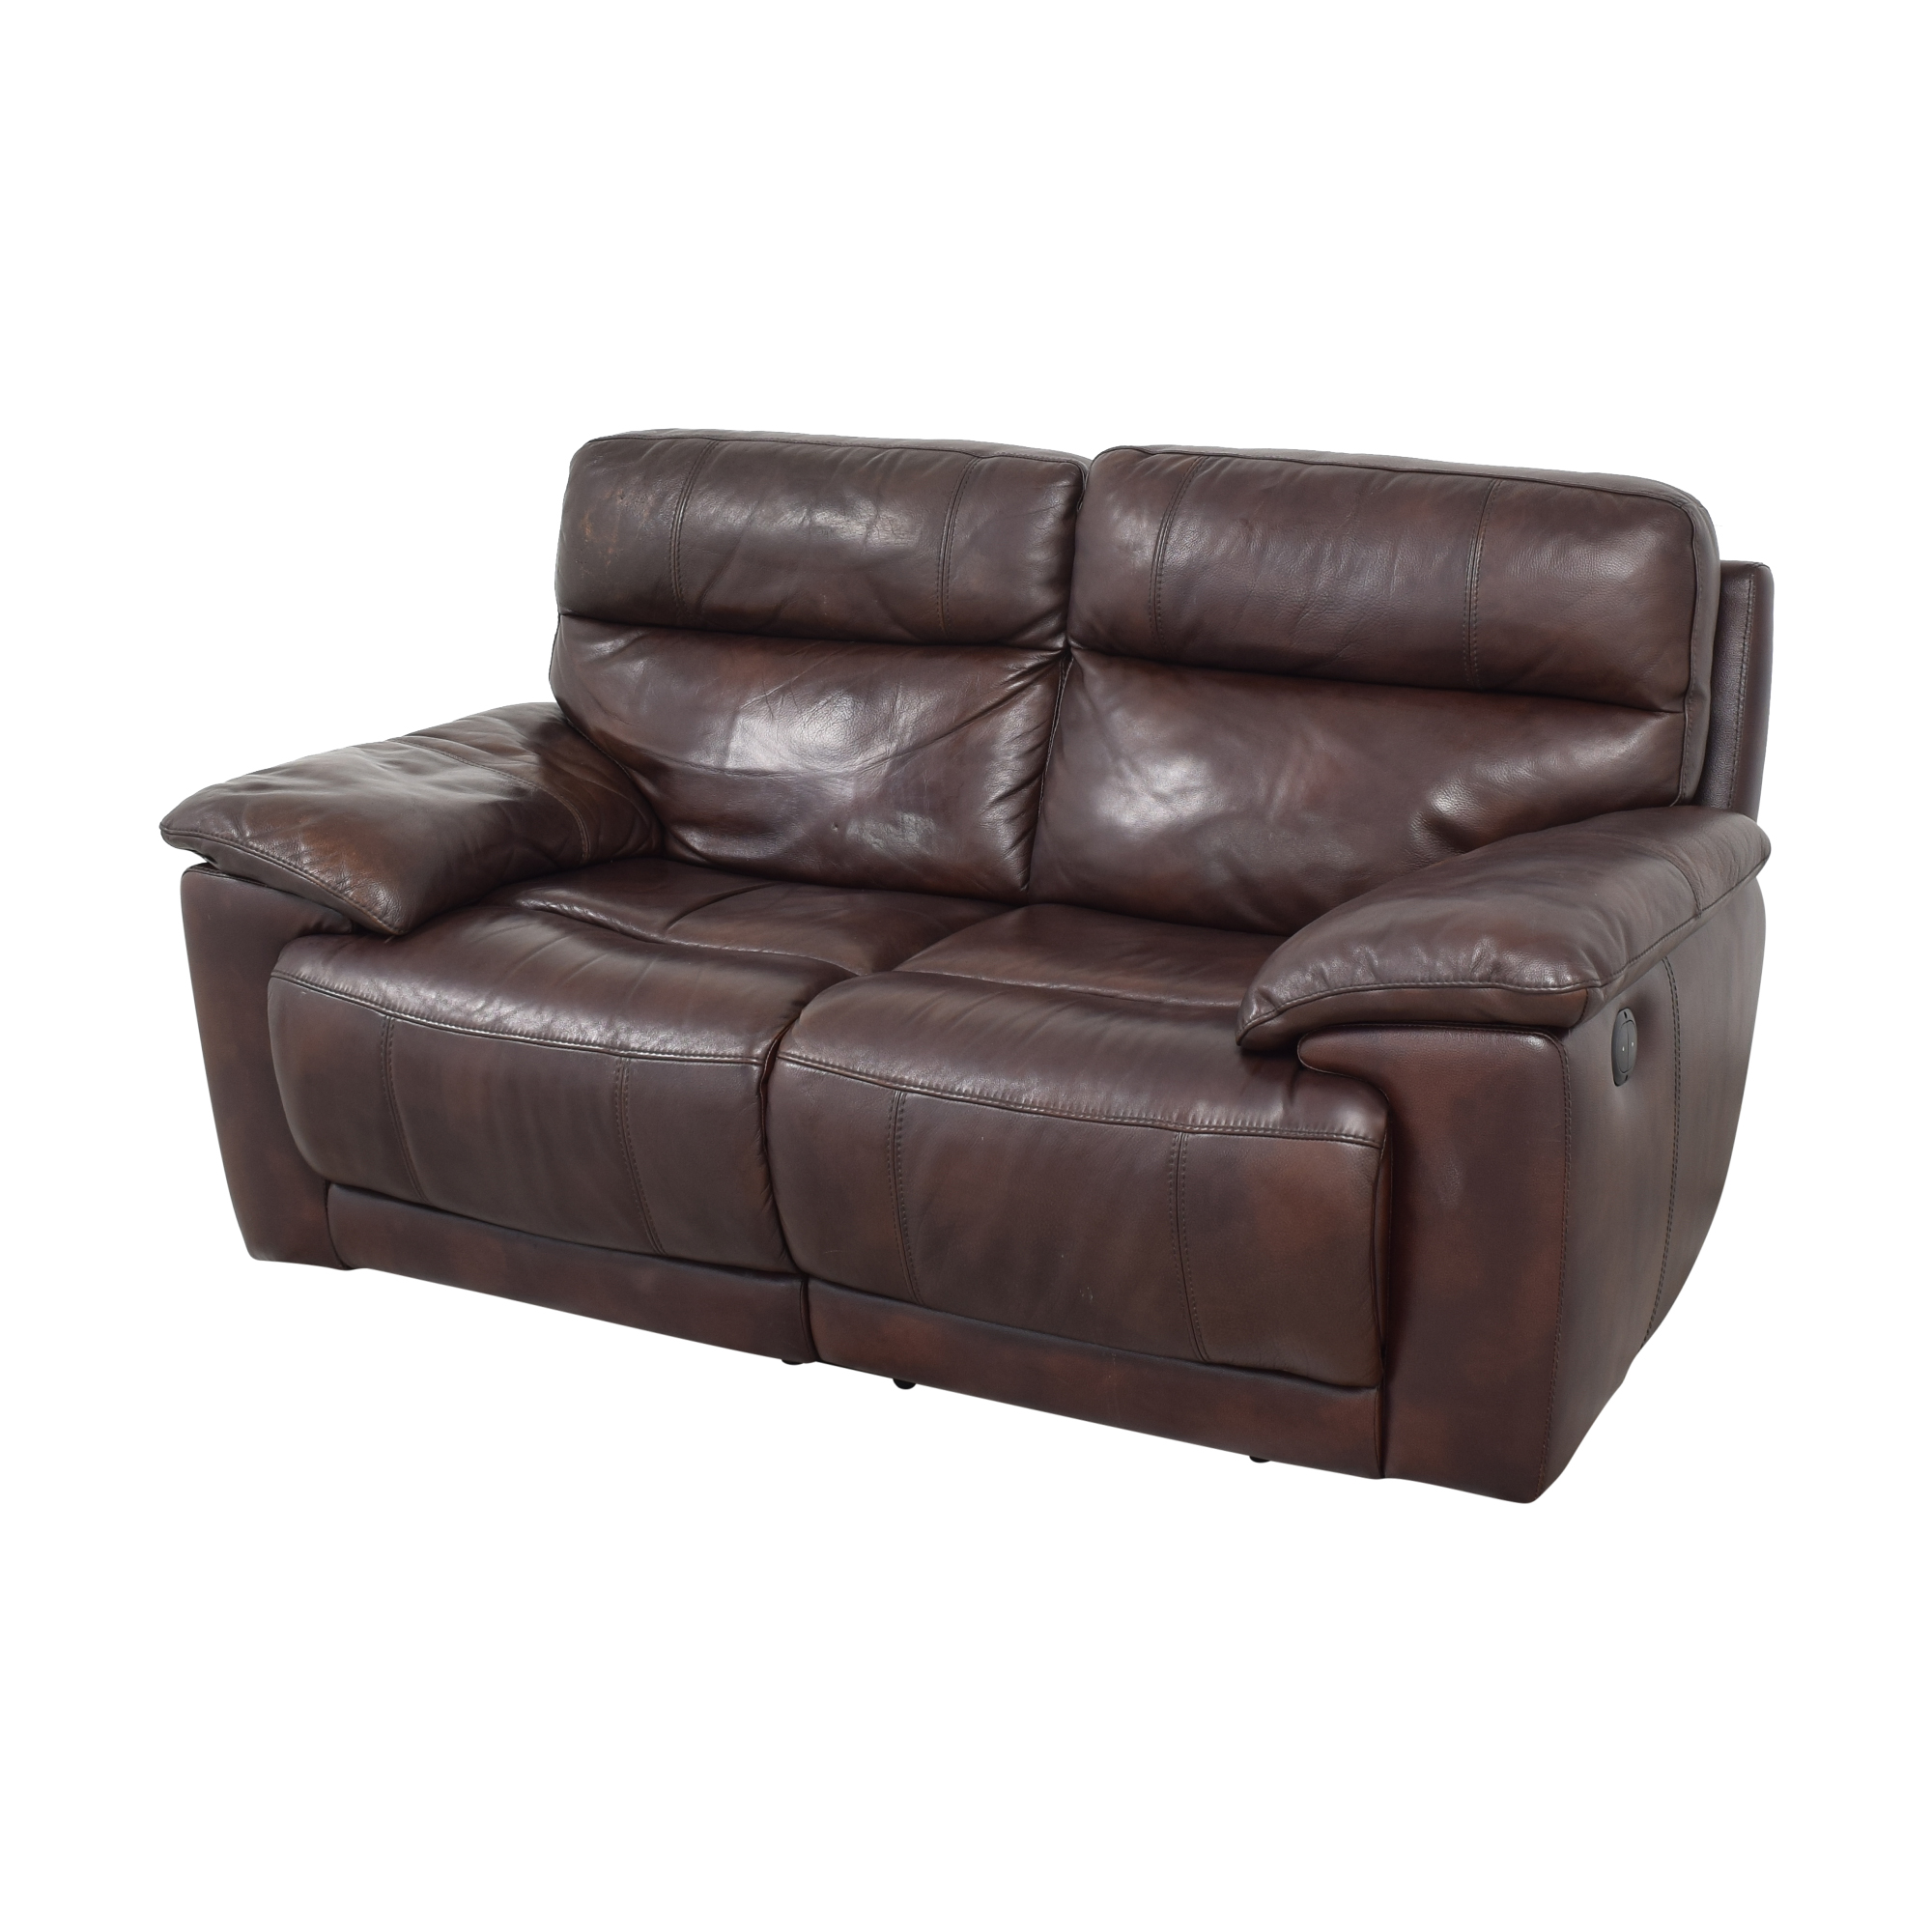 Raymour & Flanigan Raymour & Flanigan Reclining Loveseat on sale